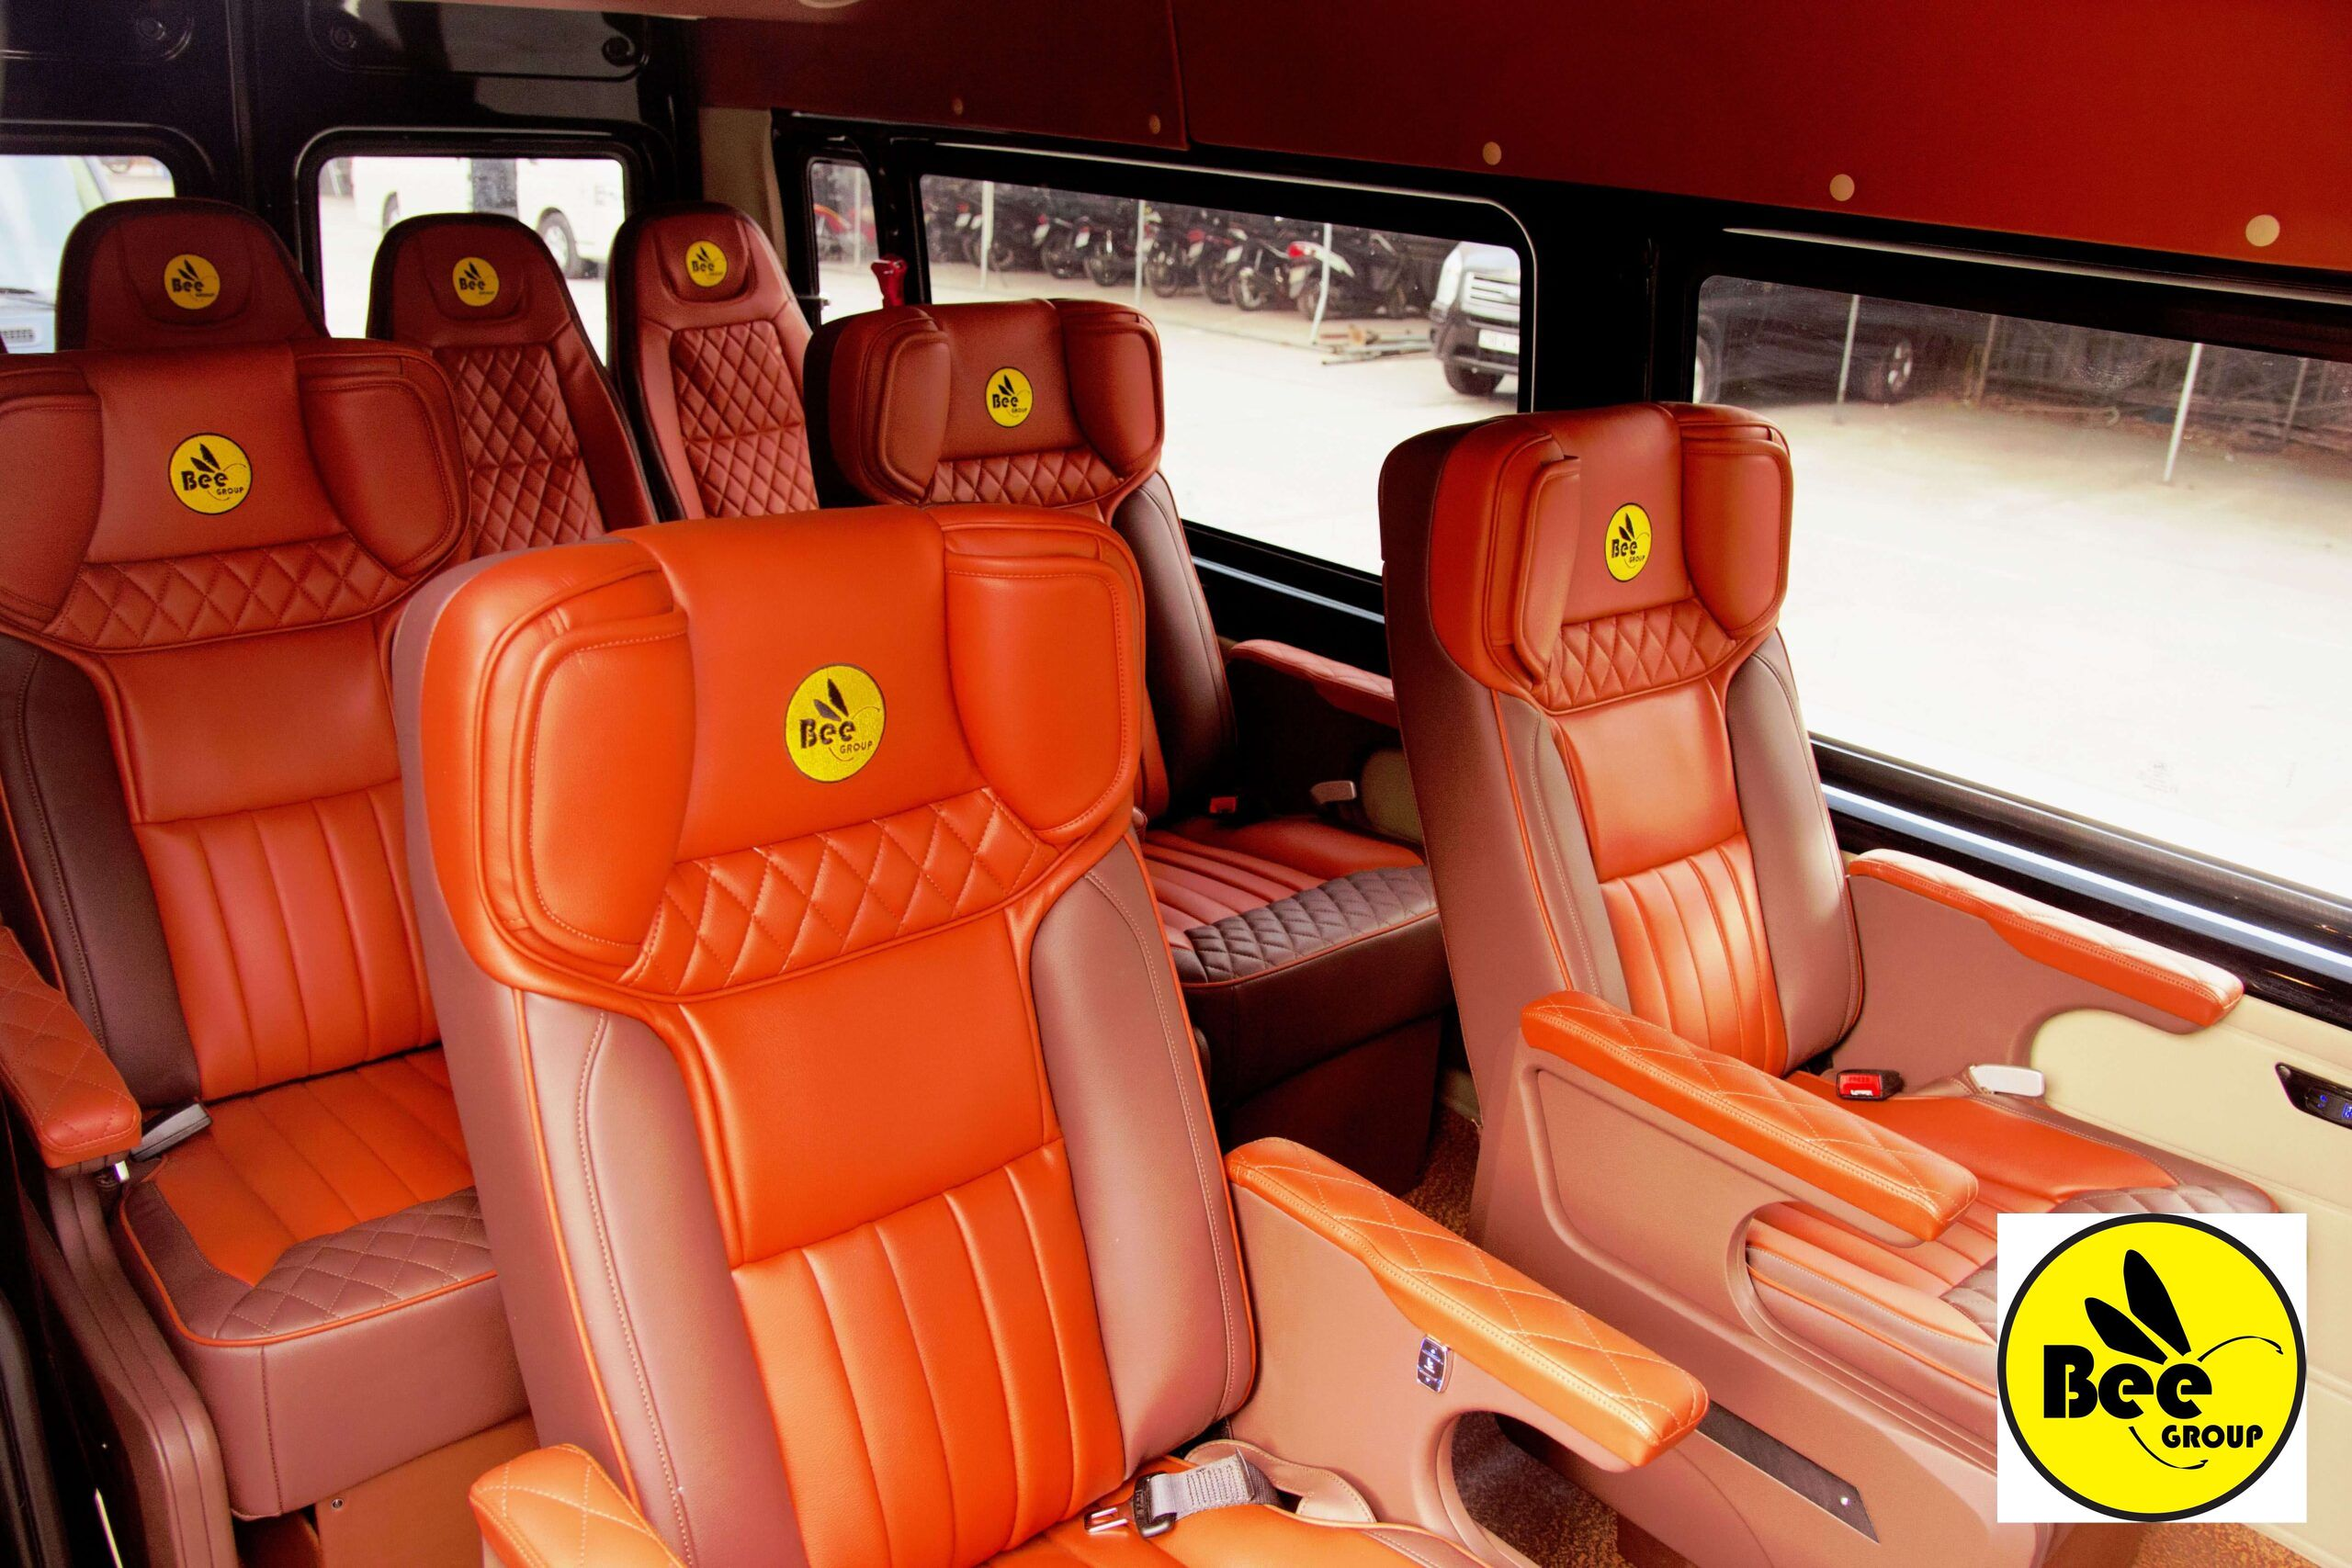 Nội thất xe BEEGROUP Limousine